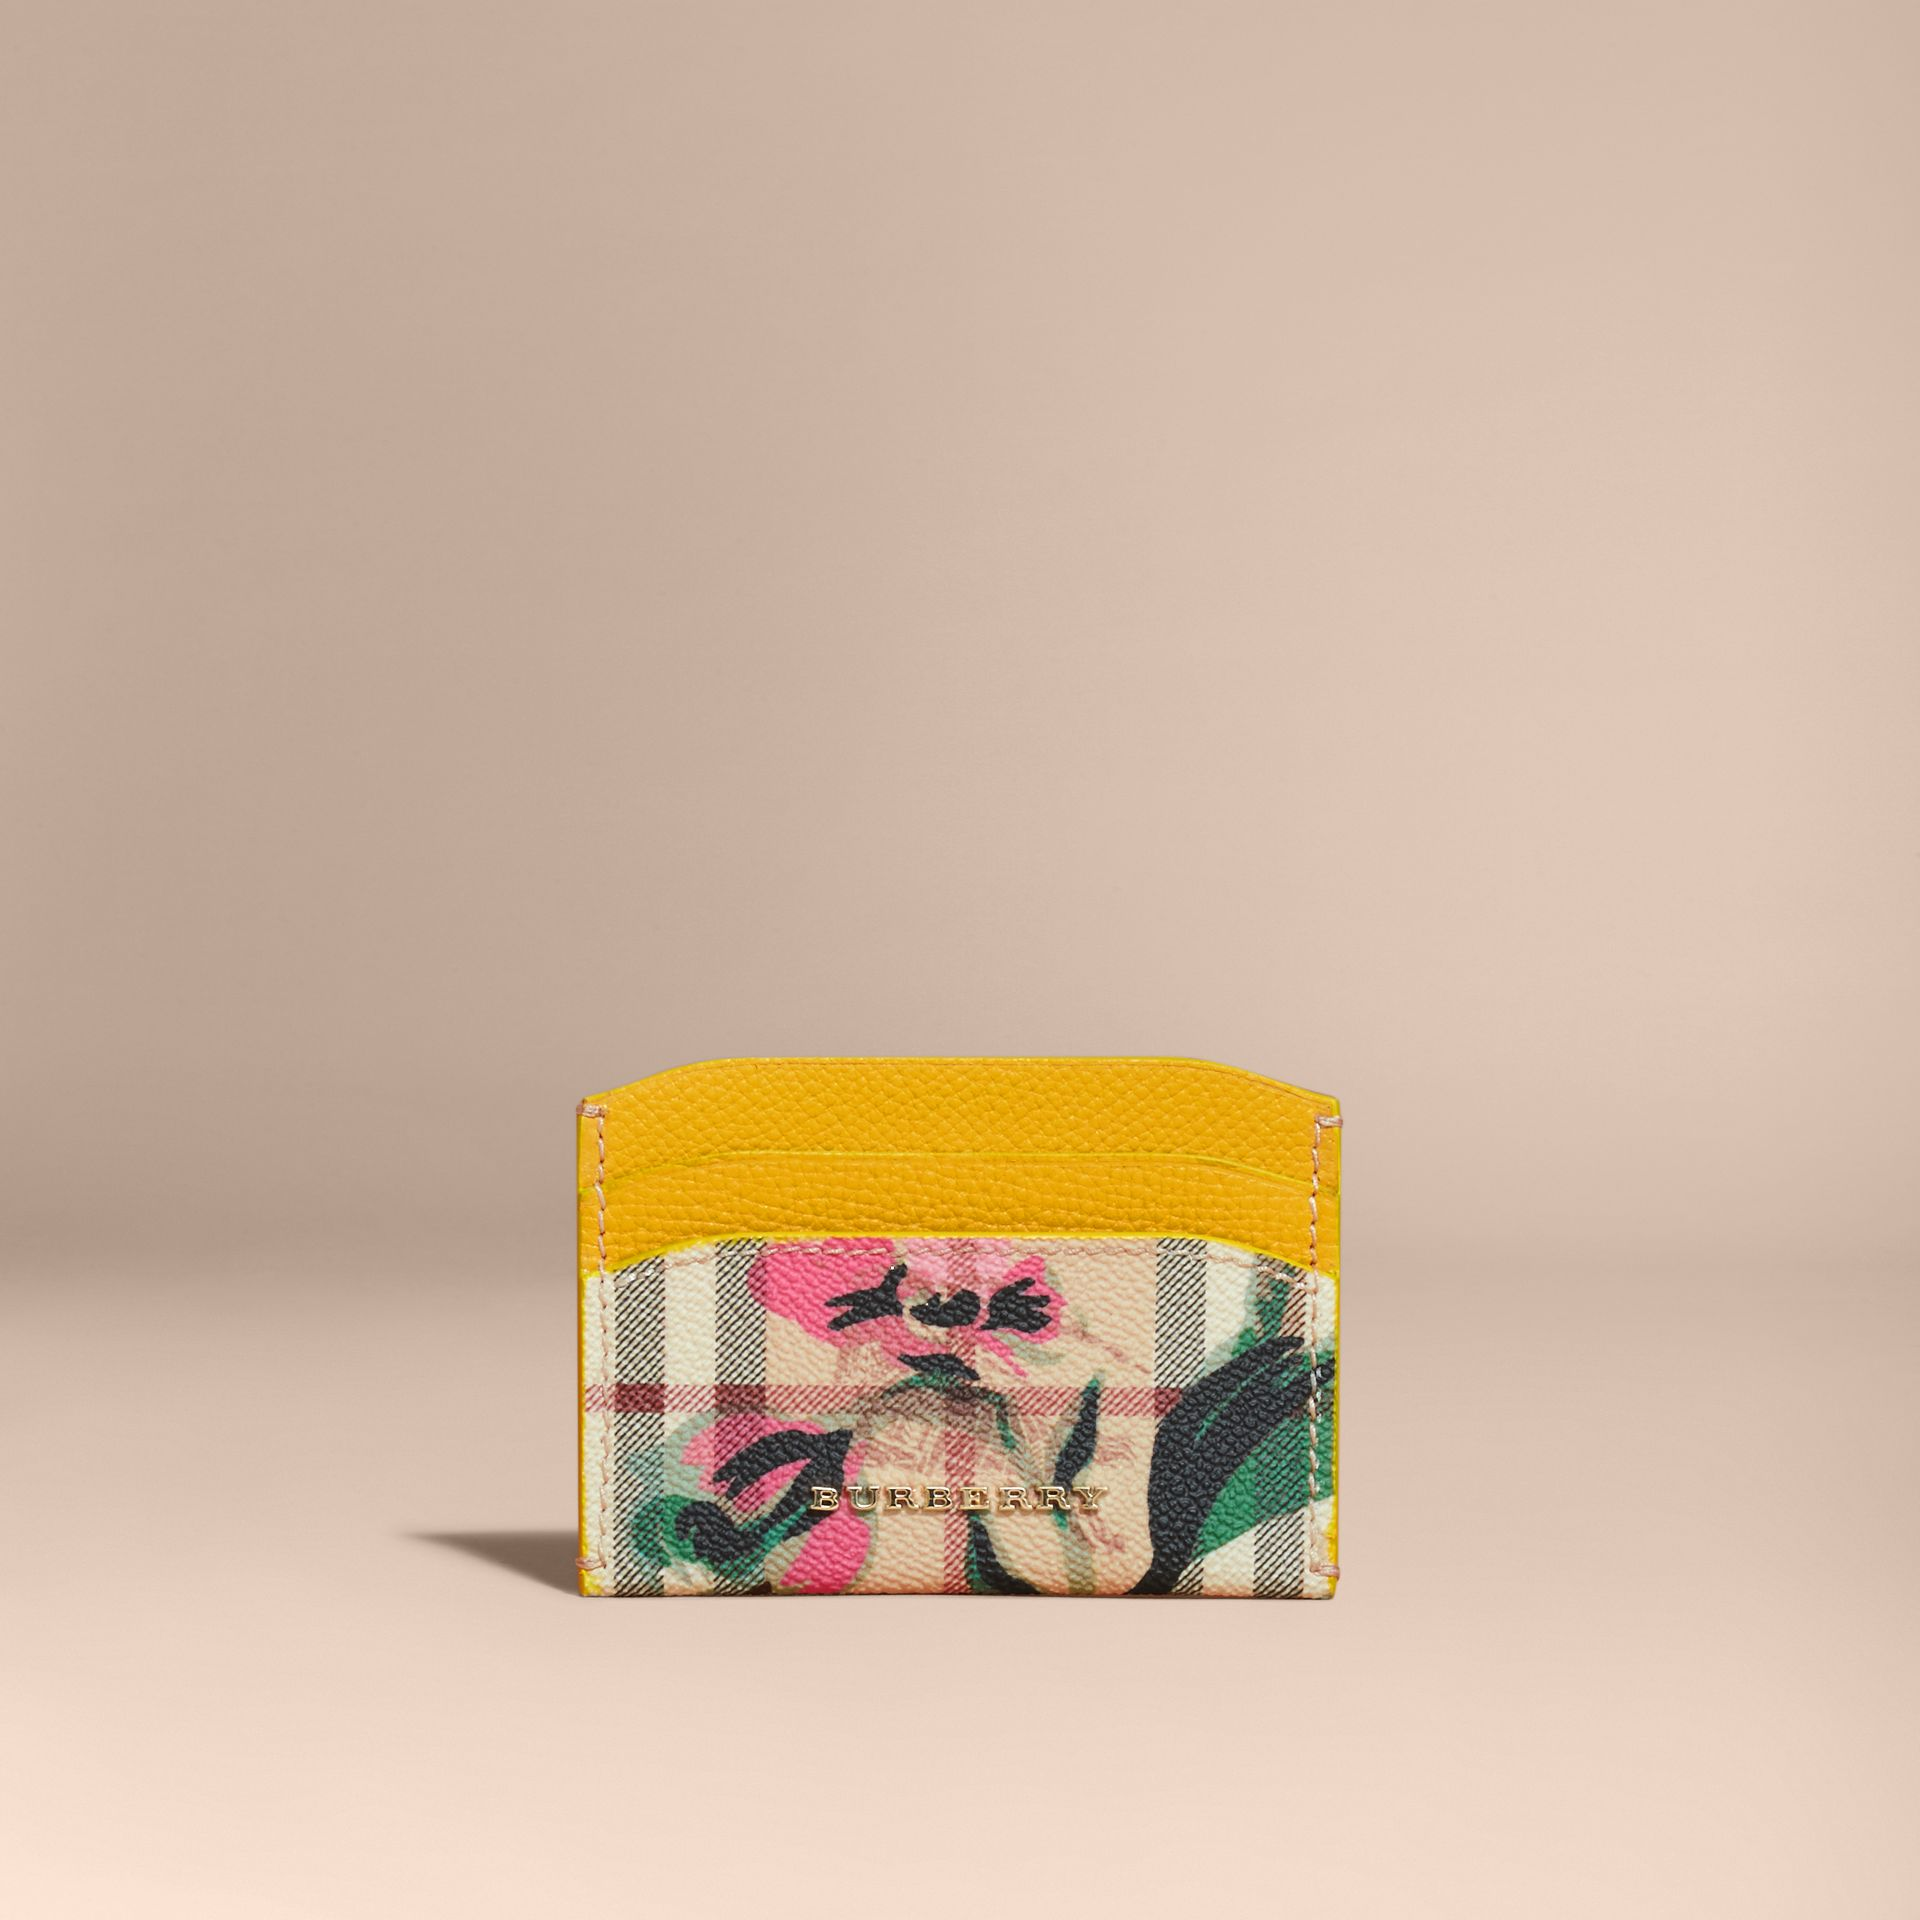 Peony Rose Print Haymarket Check and Leather Card Case in Larch Yellow/emerald Green - gallery image 6